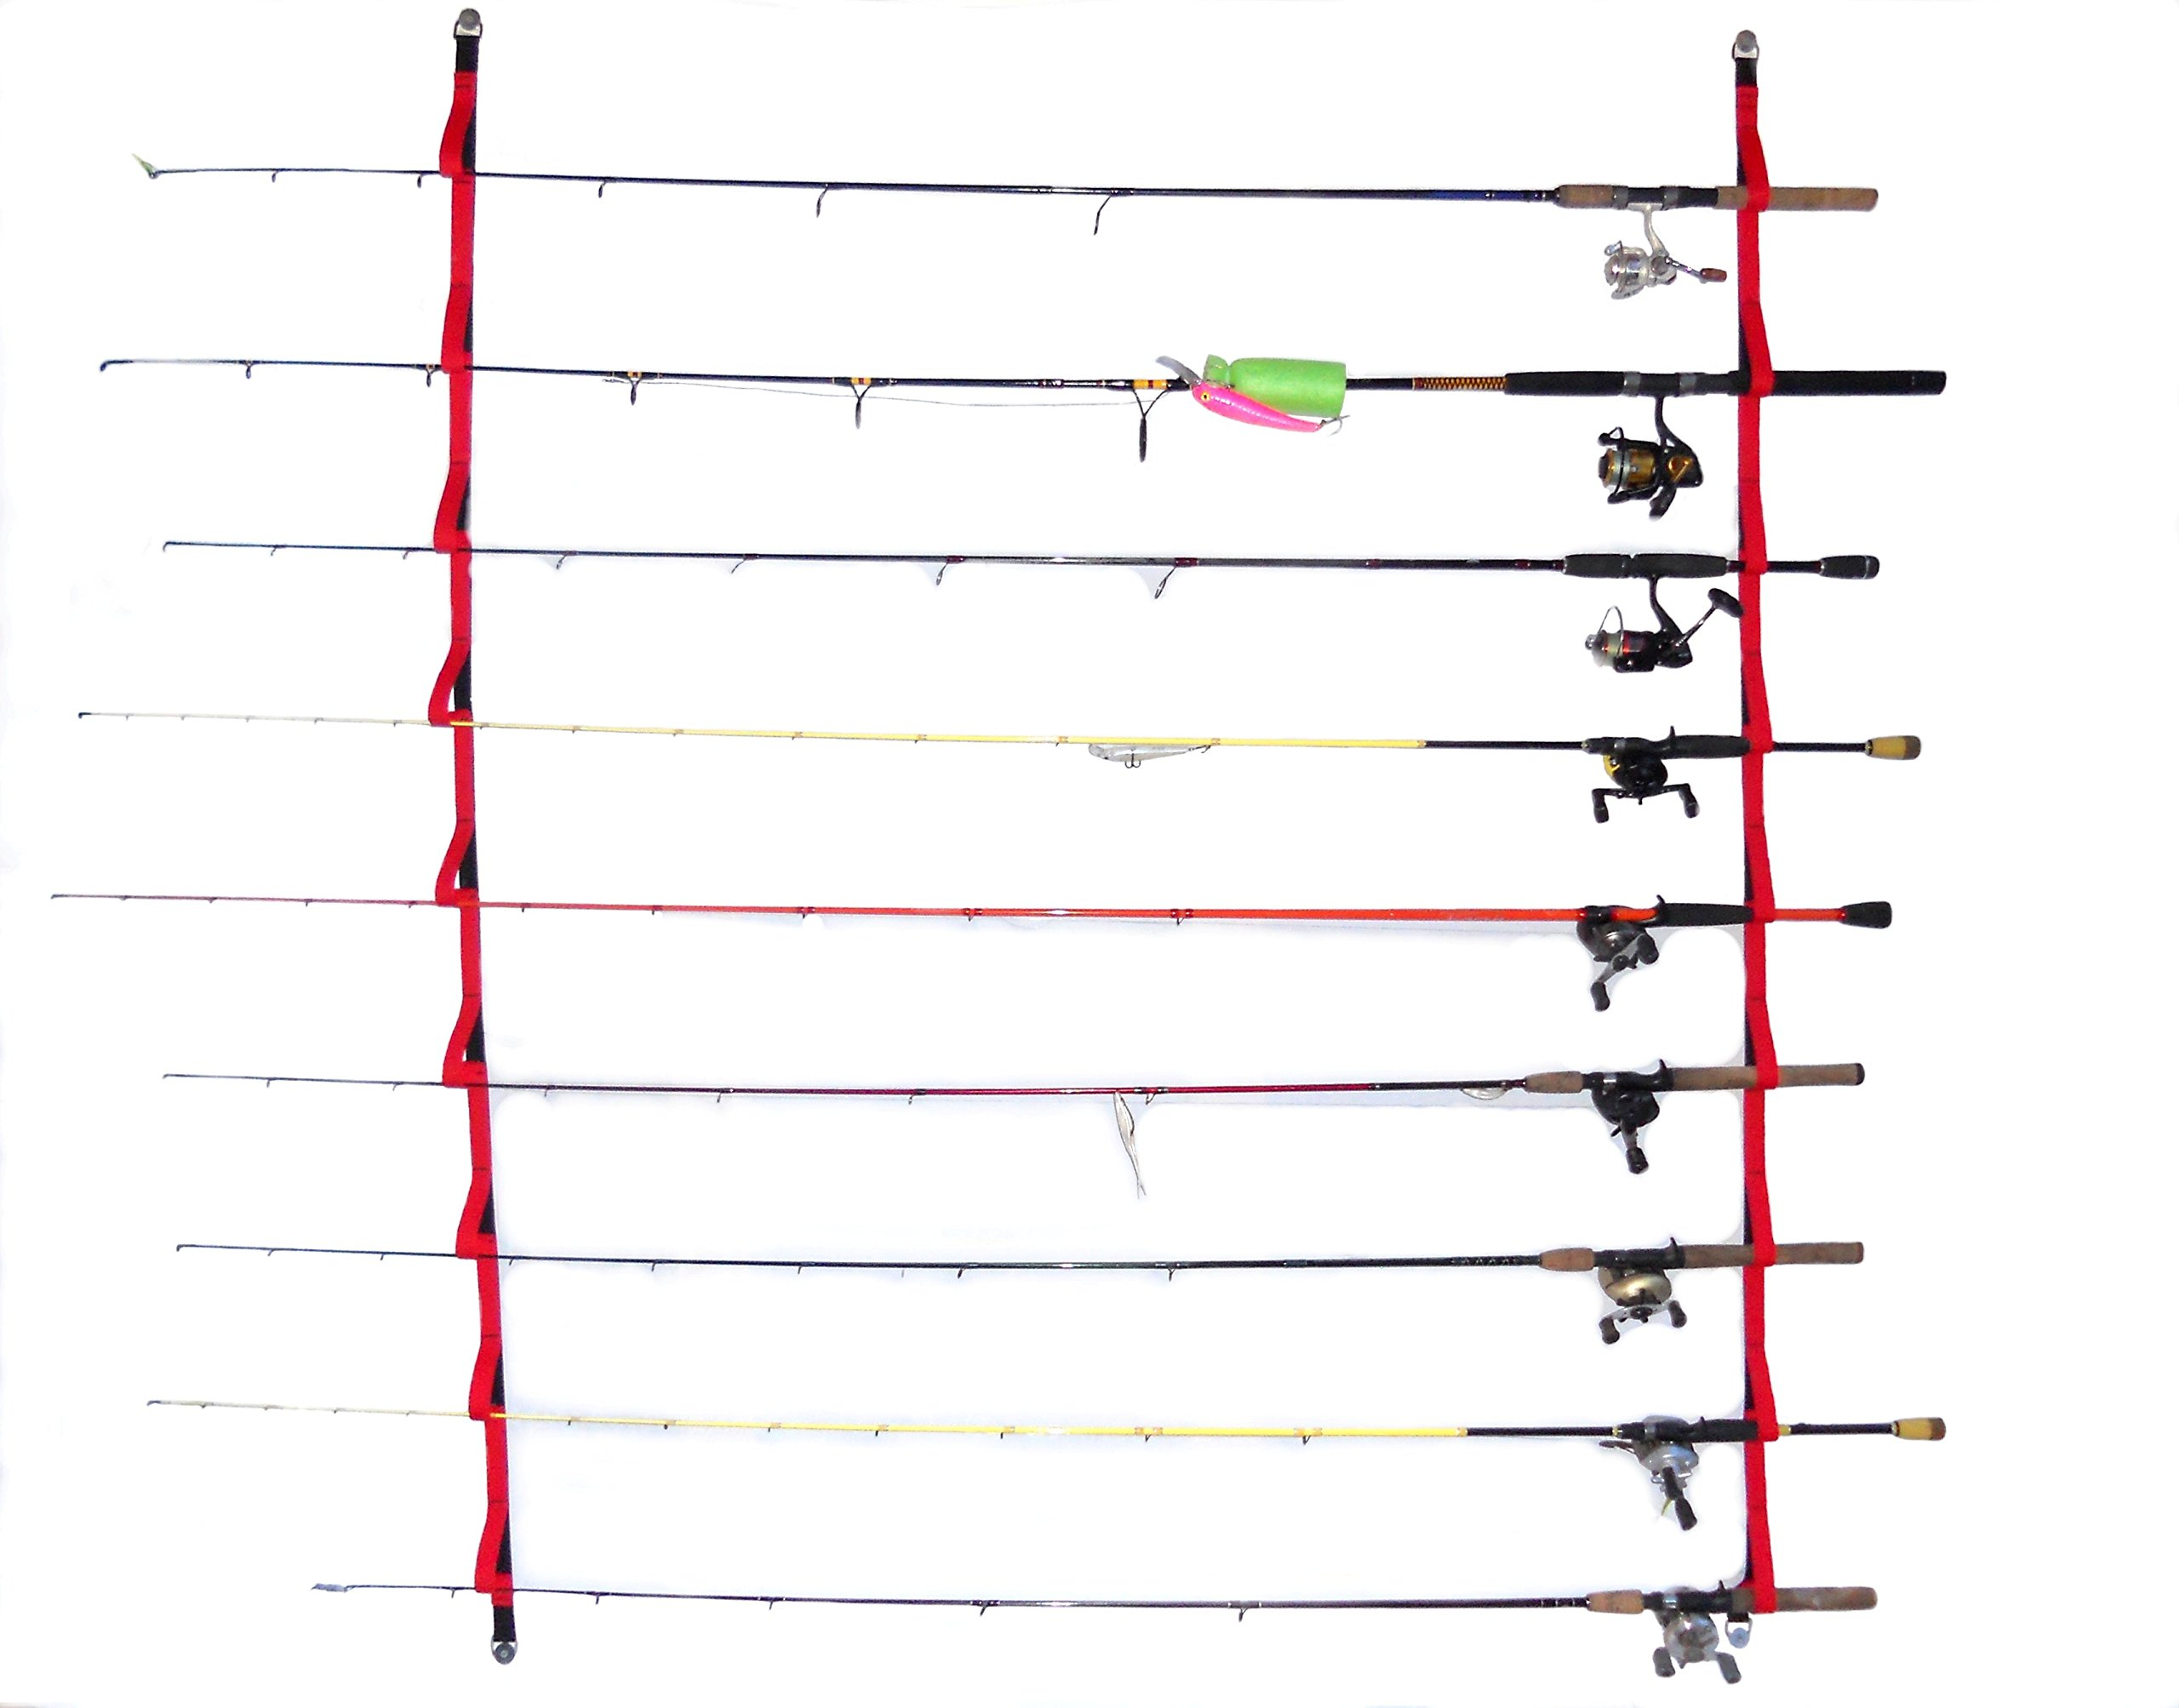 Campingandkayaking Overhead or Wall Rod Storage System. Two Sizes to Choose From. 4ft Has 6 Rod Positions, 6 Ft Has 9 Rod Positions. (6 ft - 9 rod)